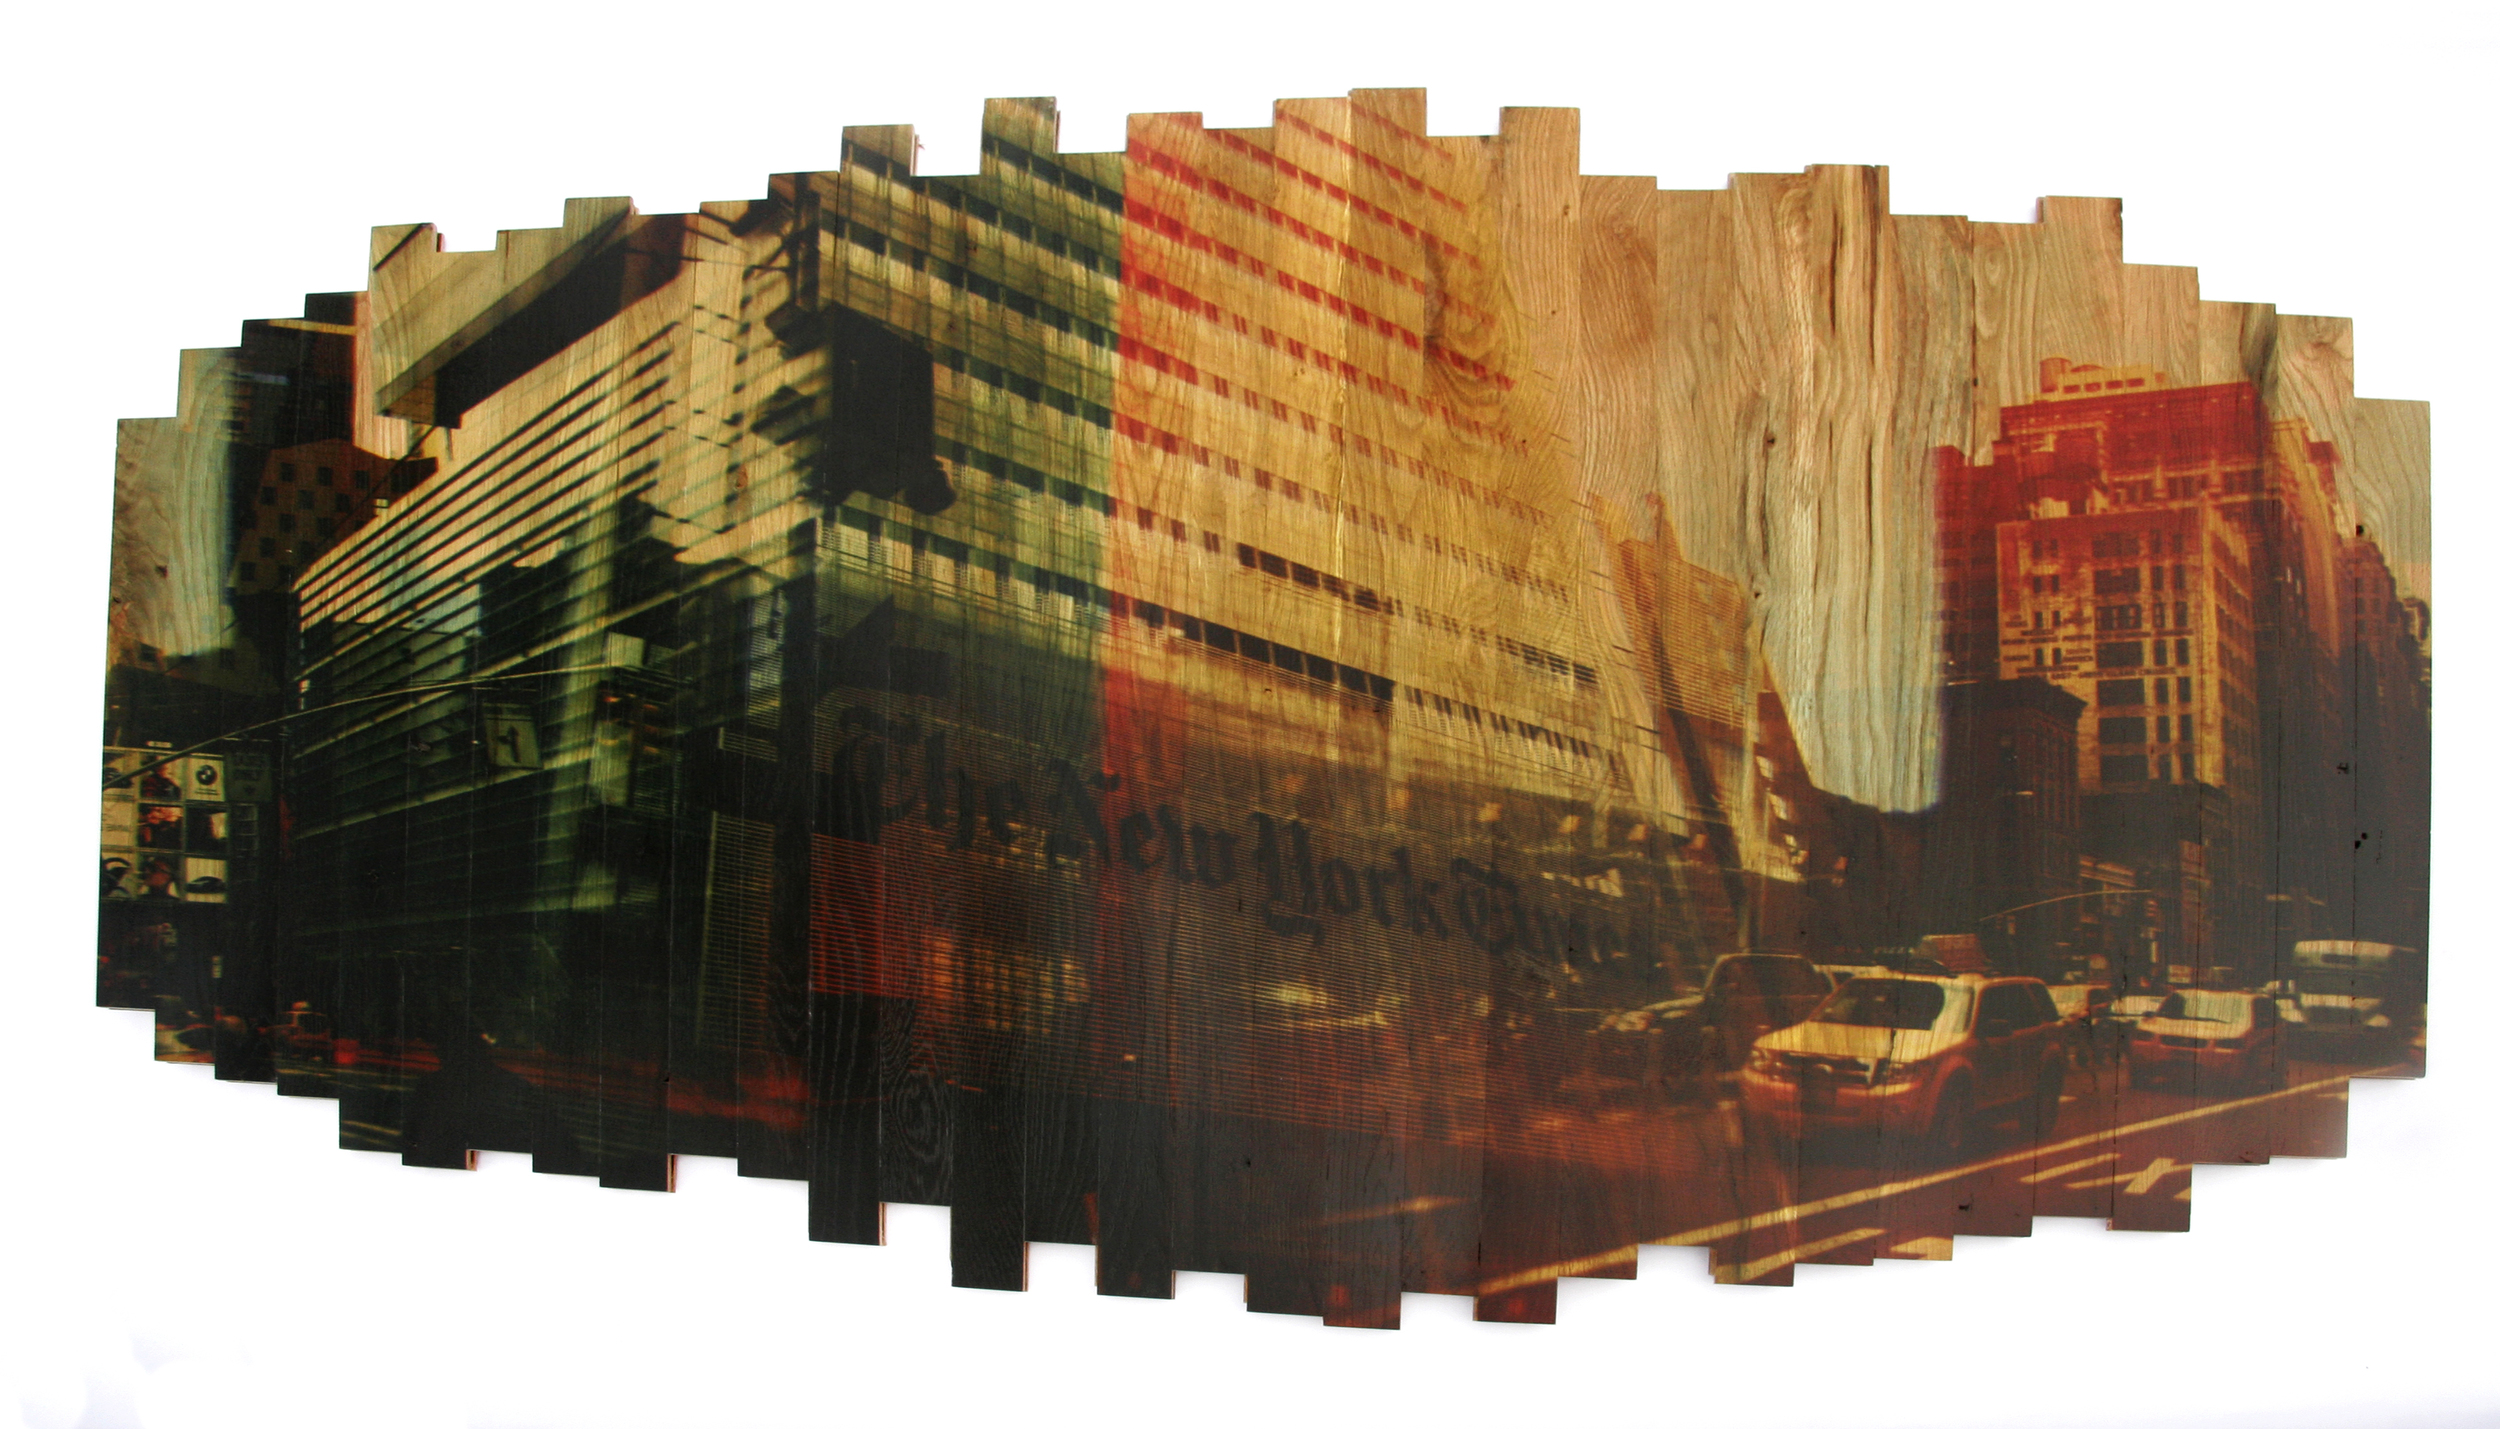 All the News That's Fit to Print,  2013 c print on reclaimed wood floor 48 x 70 x 1.5 in / 122 x 178 x 4 cm  Sold